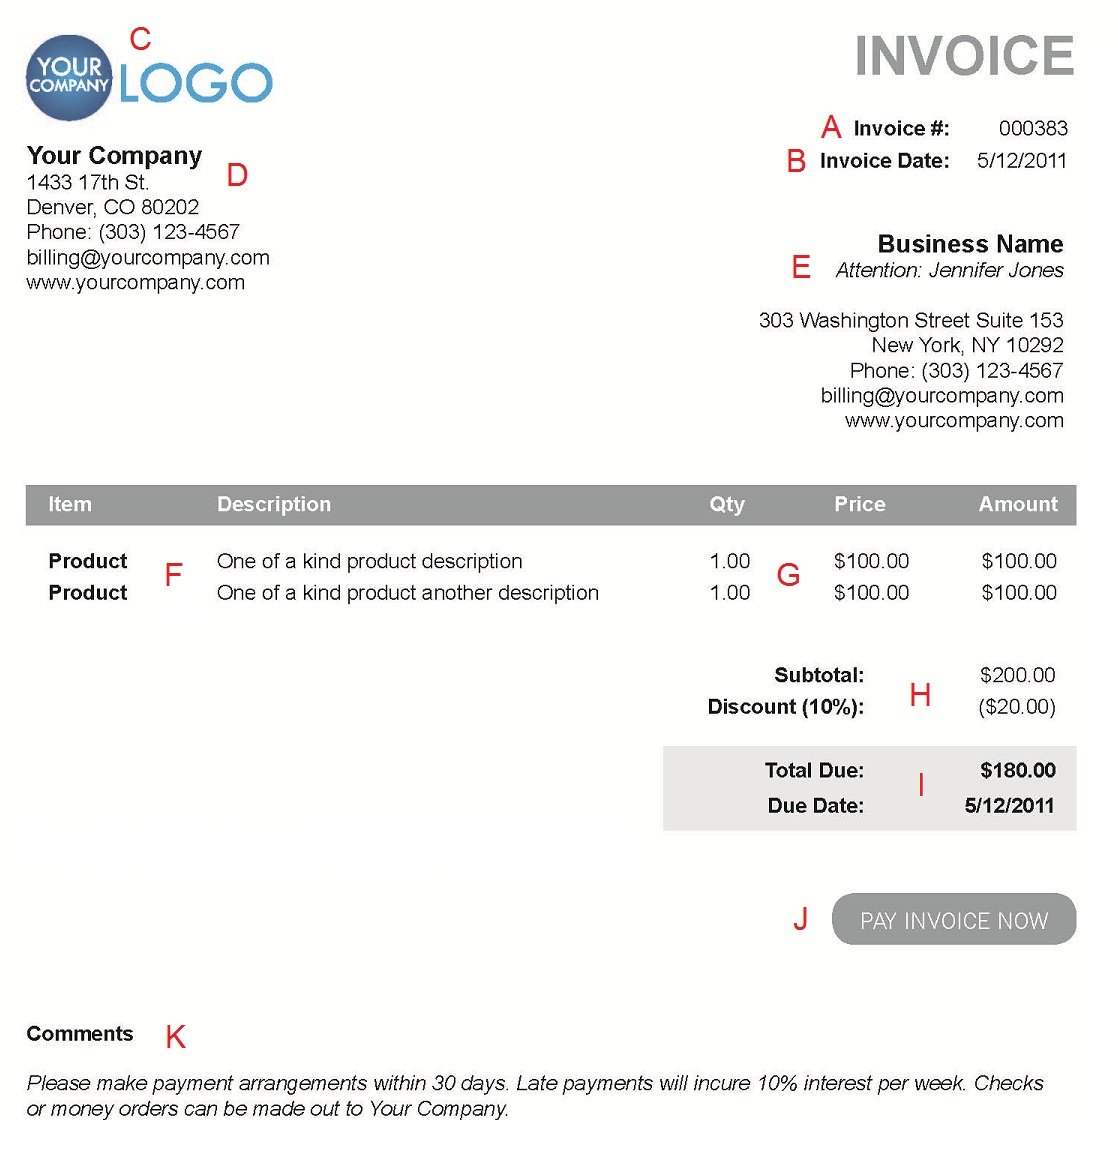 Centralasianshepherdus  Picturesque The  Different Sections Of An Electronic Payment Invoice With Hot A  With Extraordinary Format Of Receipt Book Also Receipt Template Free Word In Addition Fake Receipts Online And Petition Receipt Number As Well As Salary Receipt Template Additionally Sample Receipt For Cash Payment From Paysimplecom With Centralasianshepherdus  Hot The  Different Sections Of An Electronic Payment Invoice With Extraordinary A  And Picturesque Format Of Receipt Book Also Receipt Template Free Word In Addition Fake Receipts Online From Paysimplecom